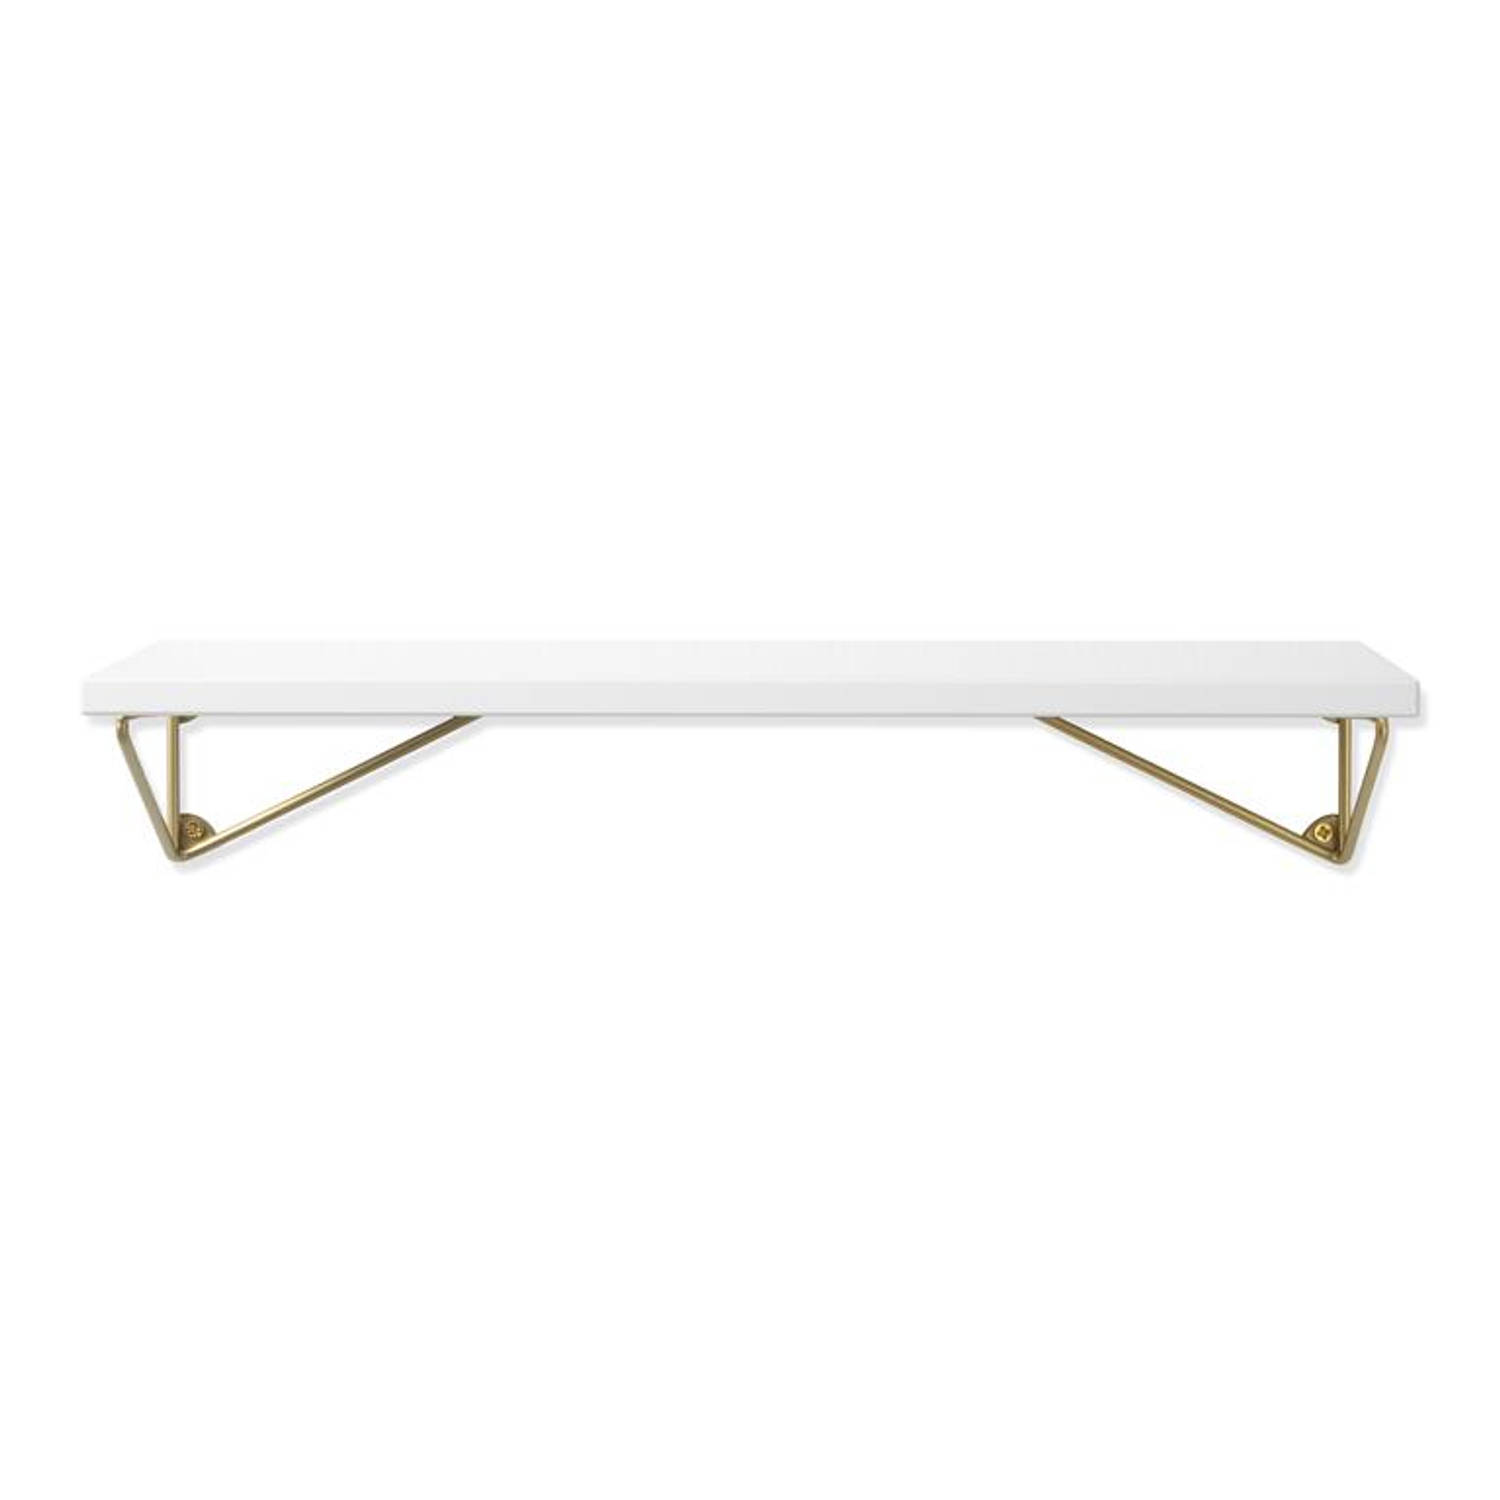 Maze Interior - Pythagoras XS white/brass matte (shelf + brackets)